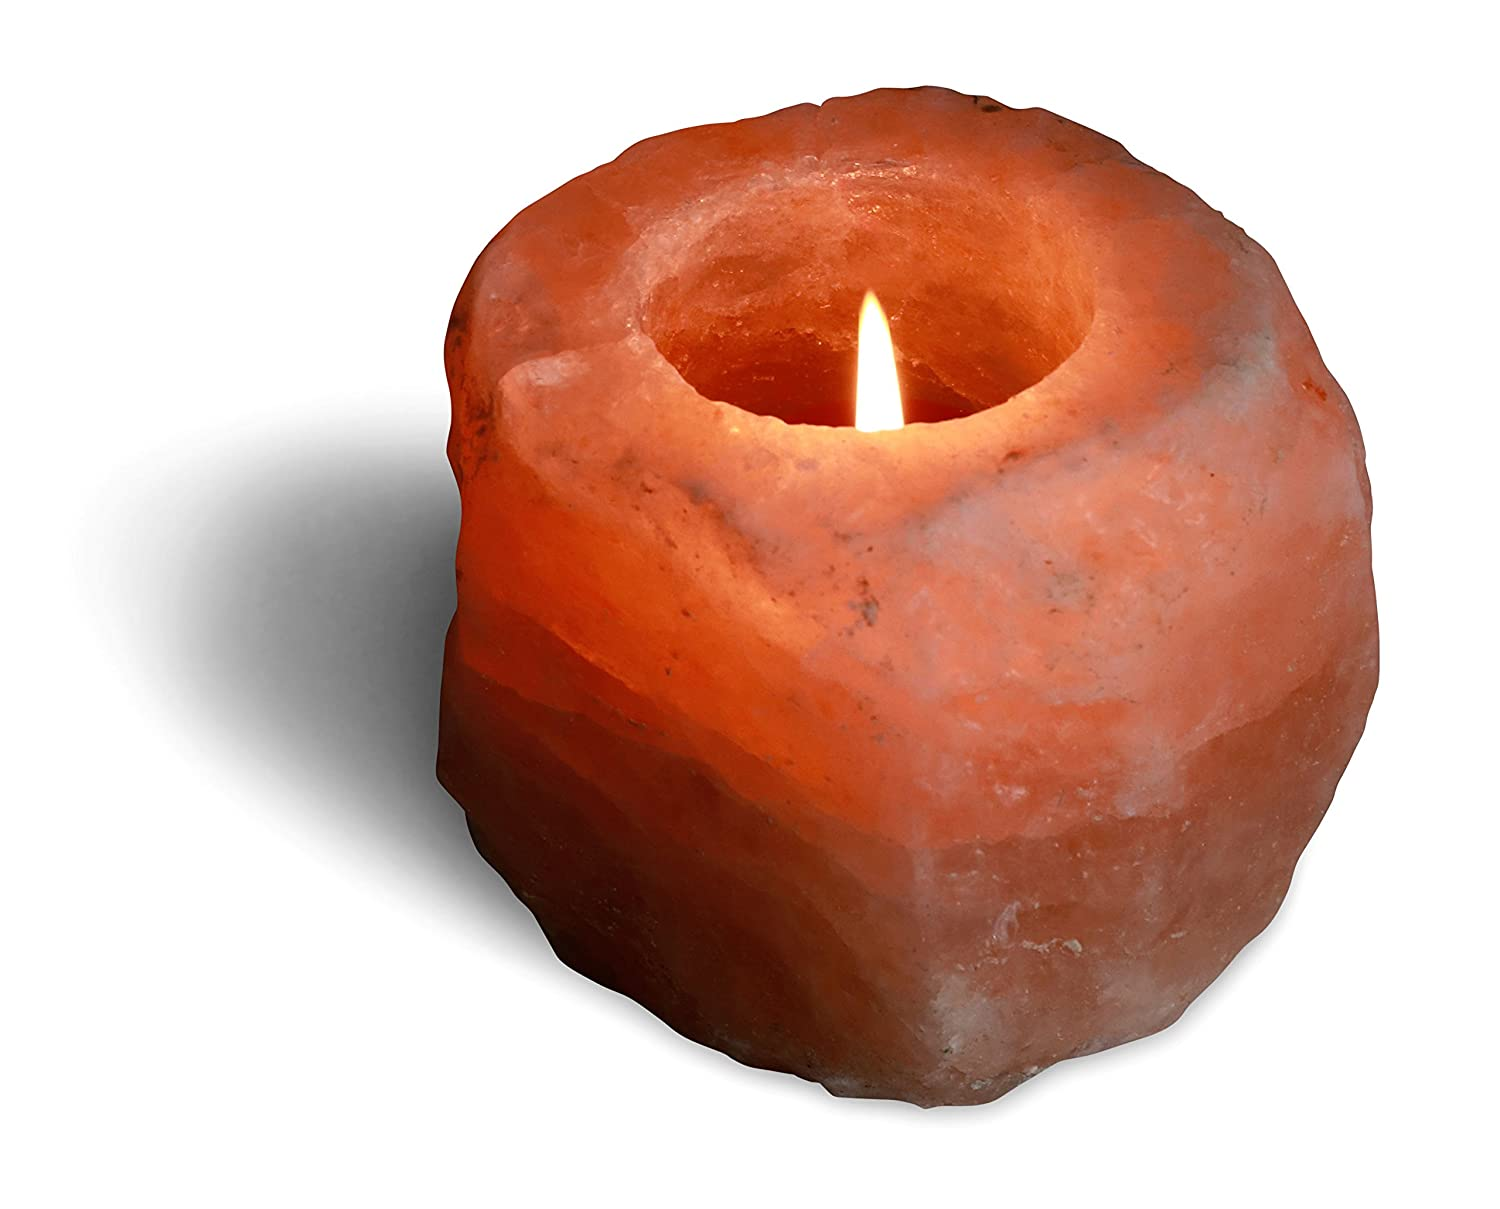 Natural Salt Candleholder - One Hole Himalayan Natural Crystal Salt Deluxe Comfort NSCAN-AB-ONE